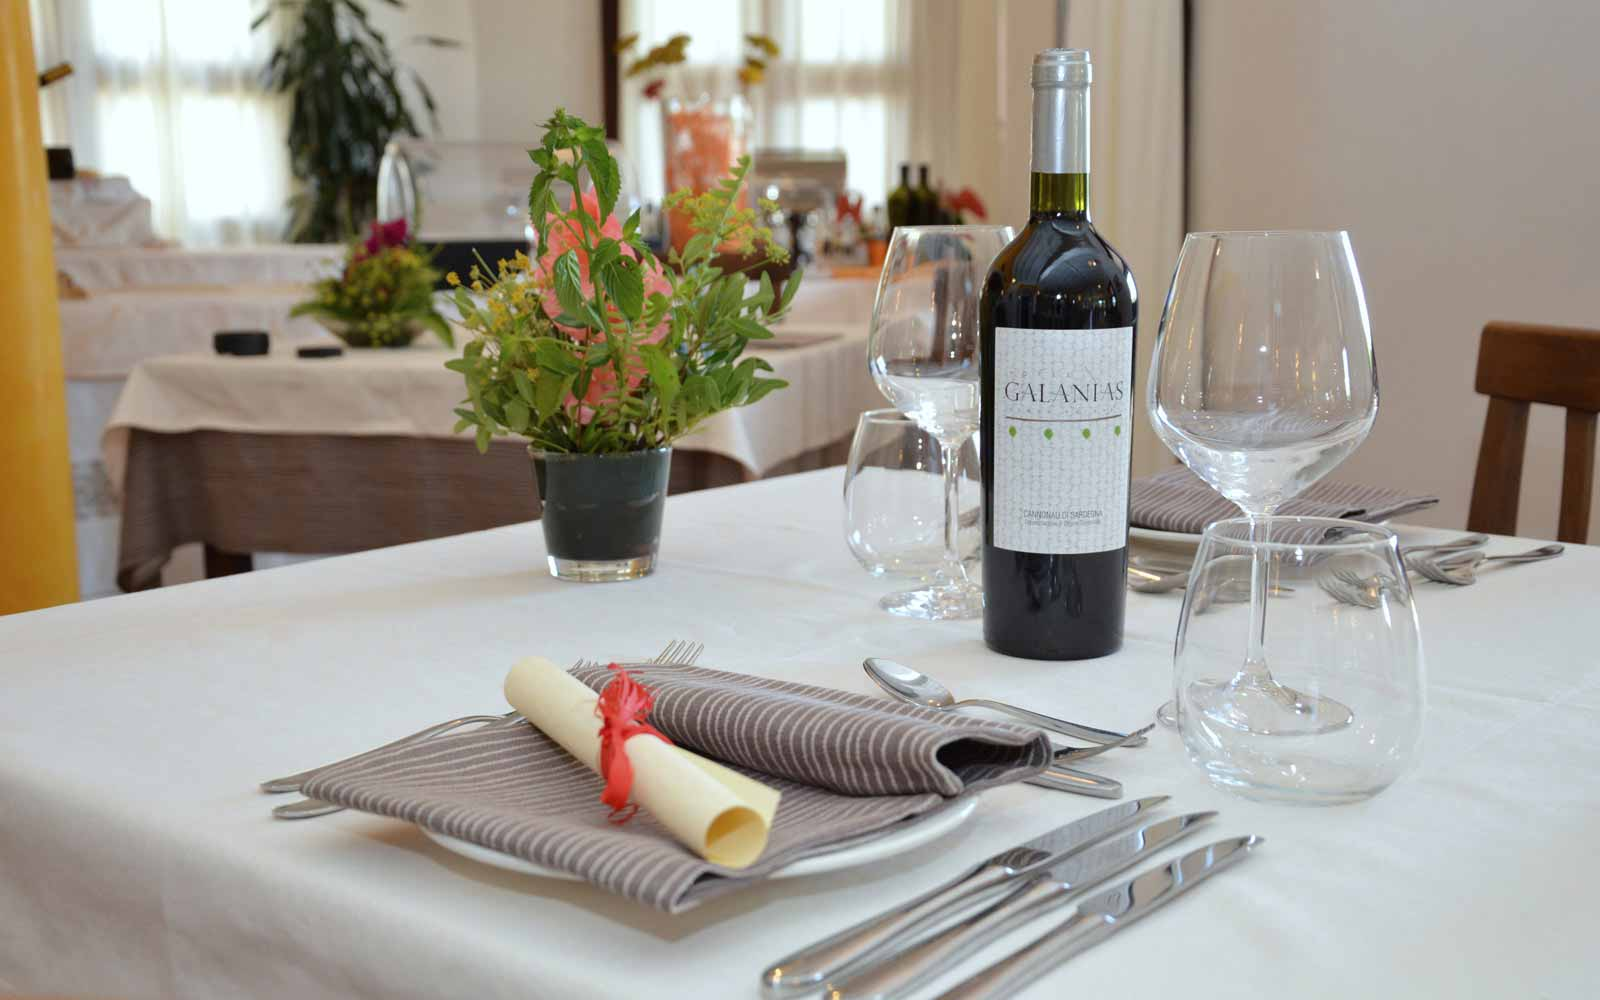 Authentical cuisine in Galanias Hotel